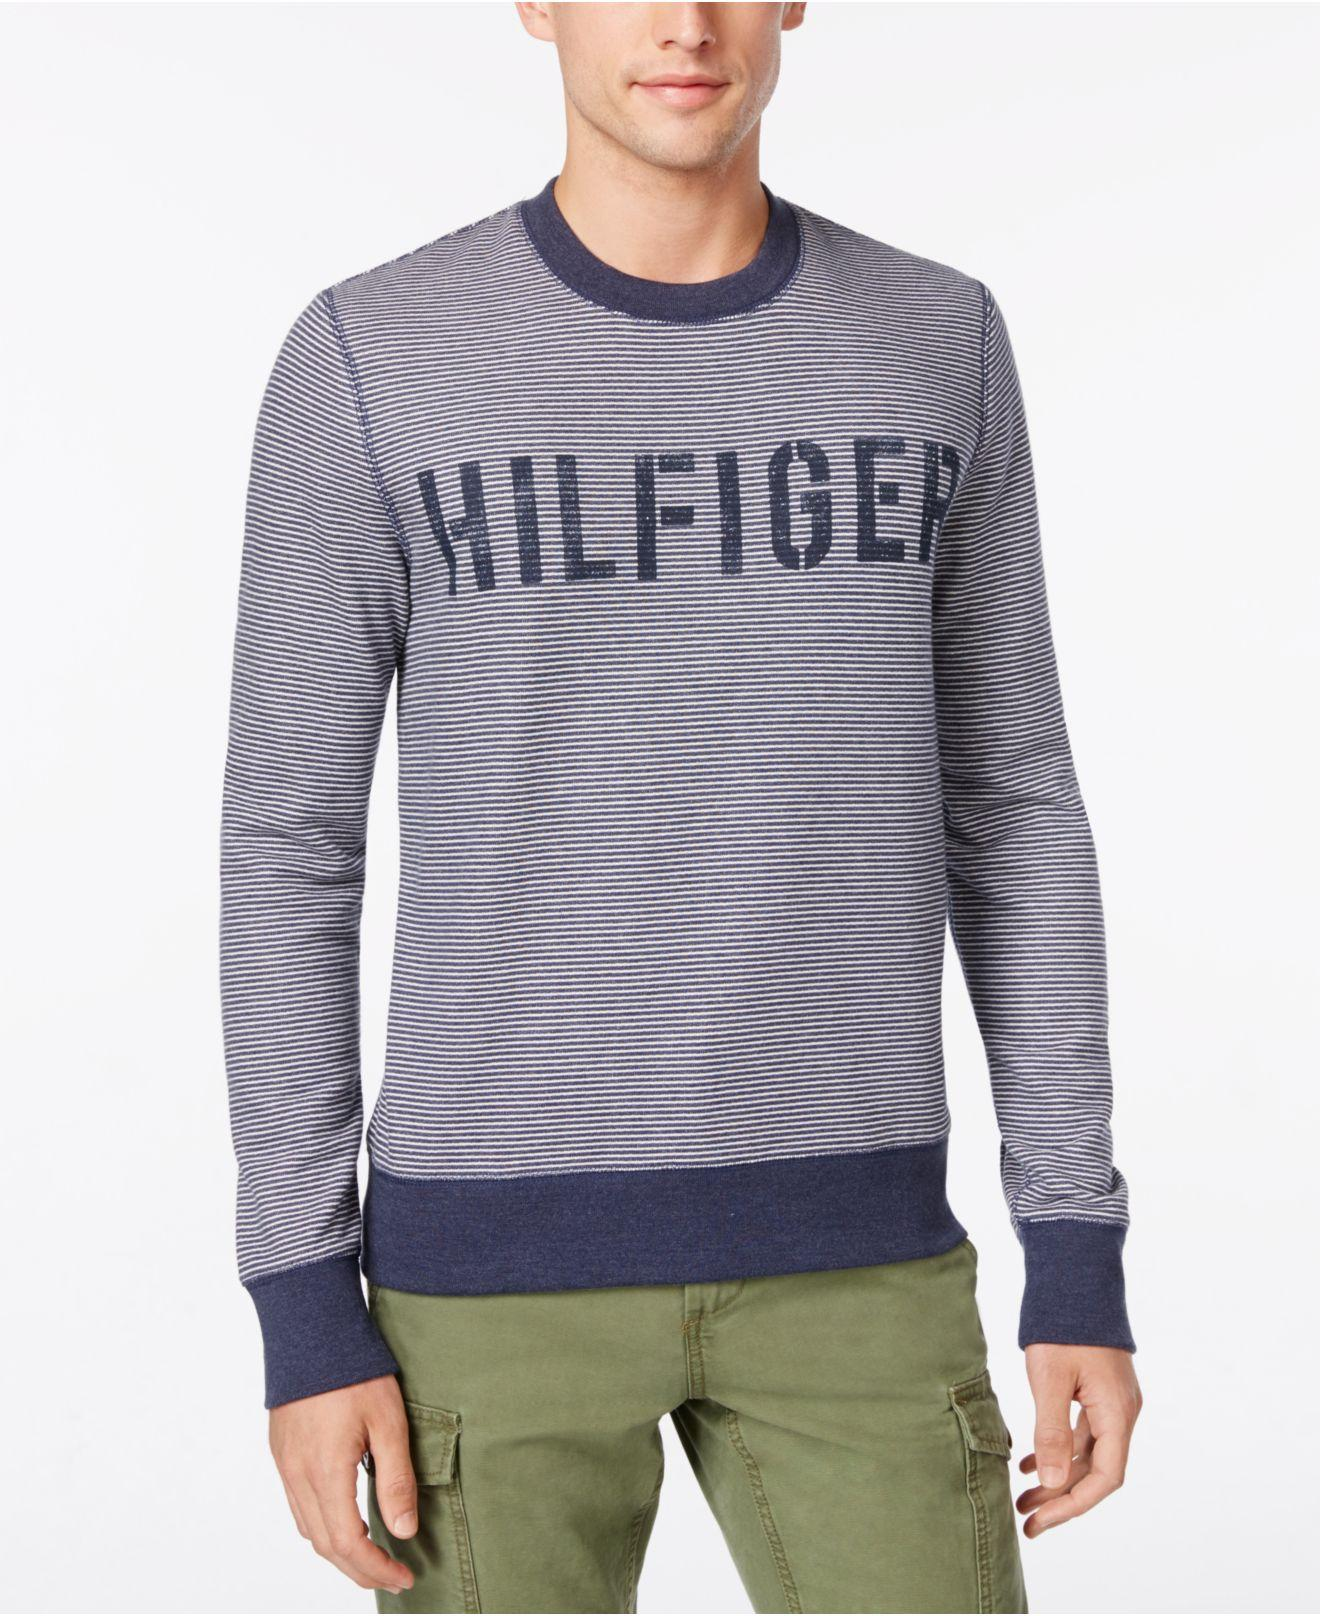 lyst tommy hilfiger men 39 s hampton stripe logo sweater in. Black Bedroom Furniture Sets. Home Design Ideas